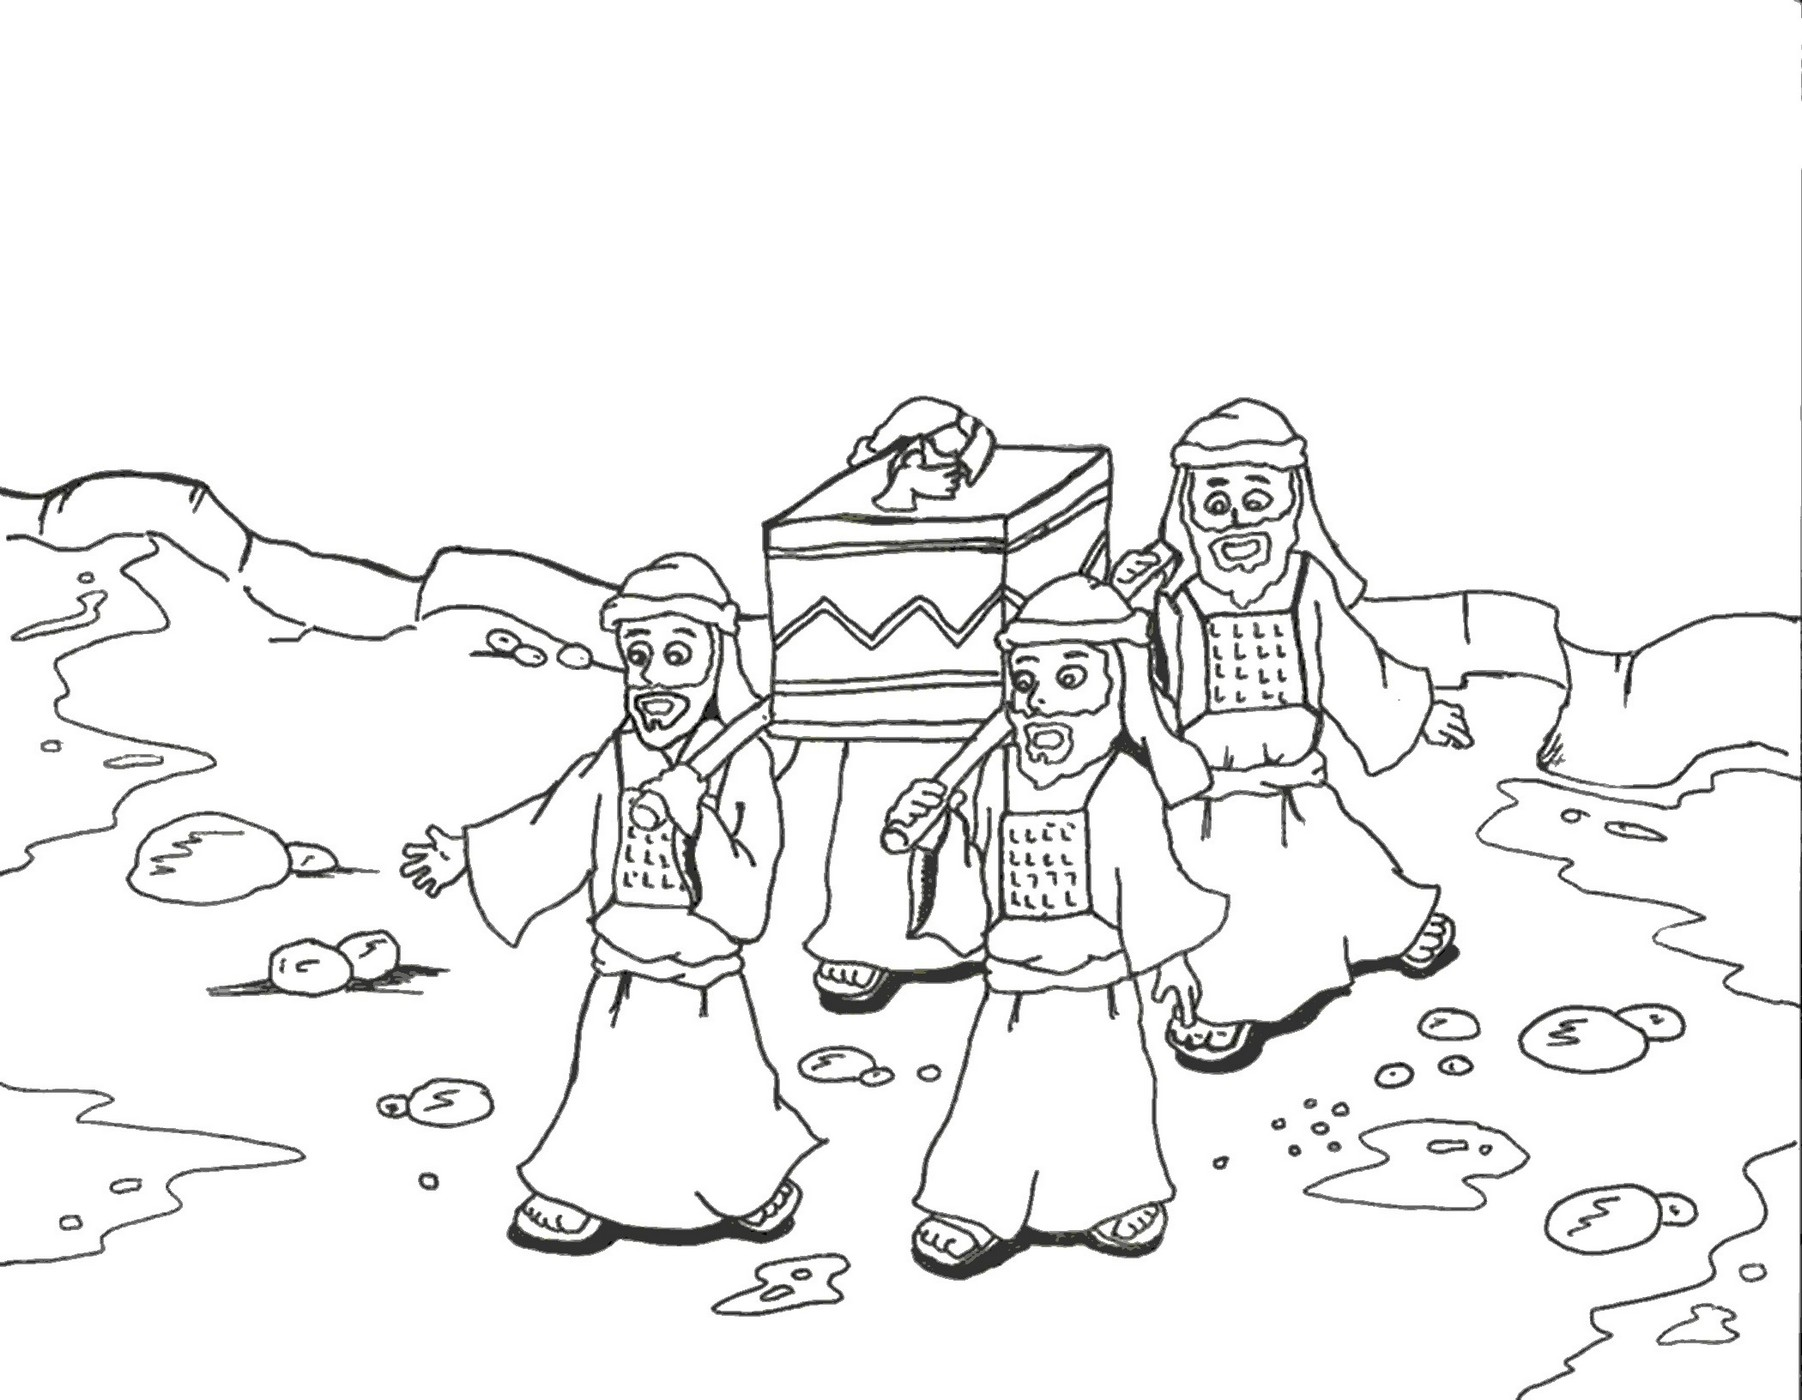 Coloring Pages For Joshua : Crossing the jordan river coloring pages az